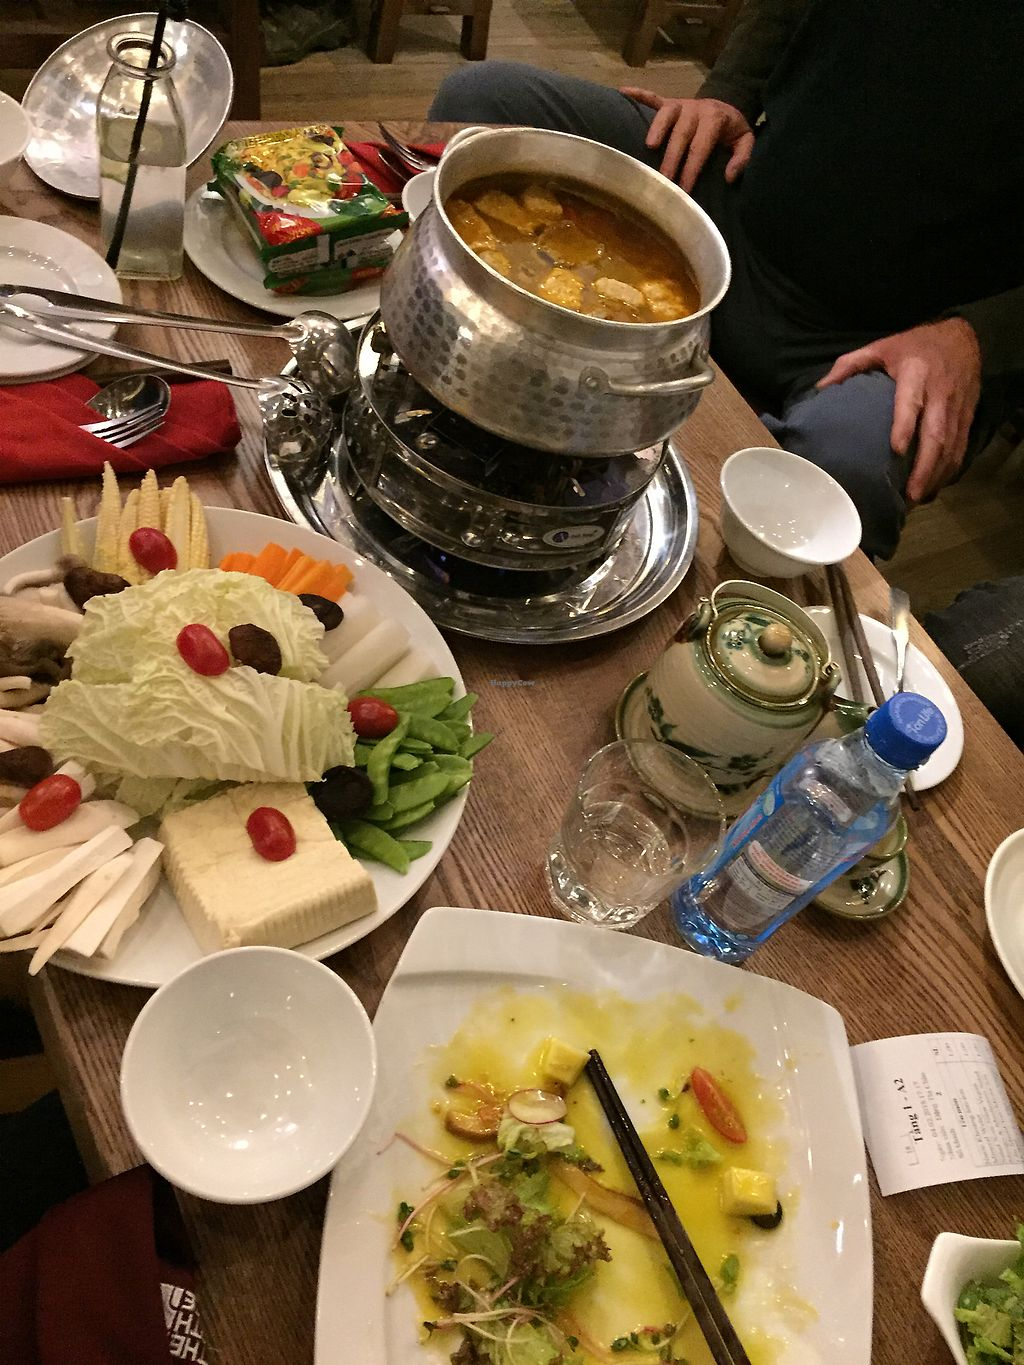 """Photo of Minh Chay - Hang Gai  by <a href=""""/members/profile/LunaClarice"""">LunaClarice</a> <br/>Hot Pot for 2-3 people <br/> February 6, 2018  - <a href='/contact/abuse/image/83266/355637'>Report</a>"""